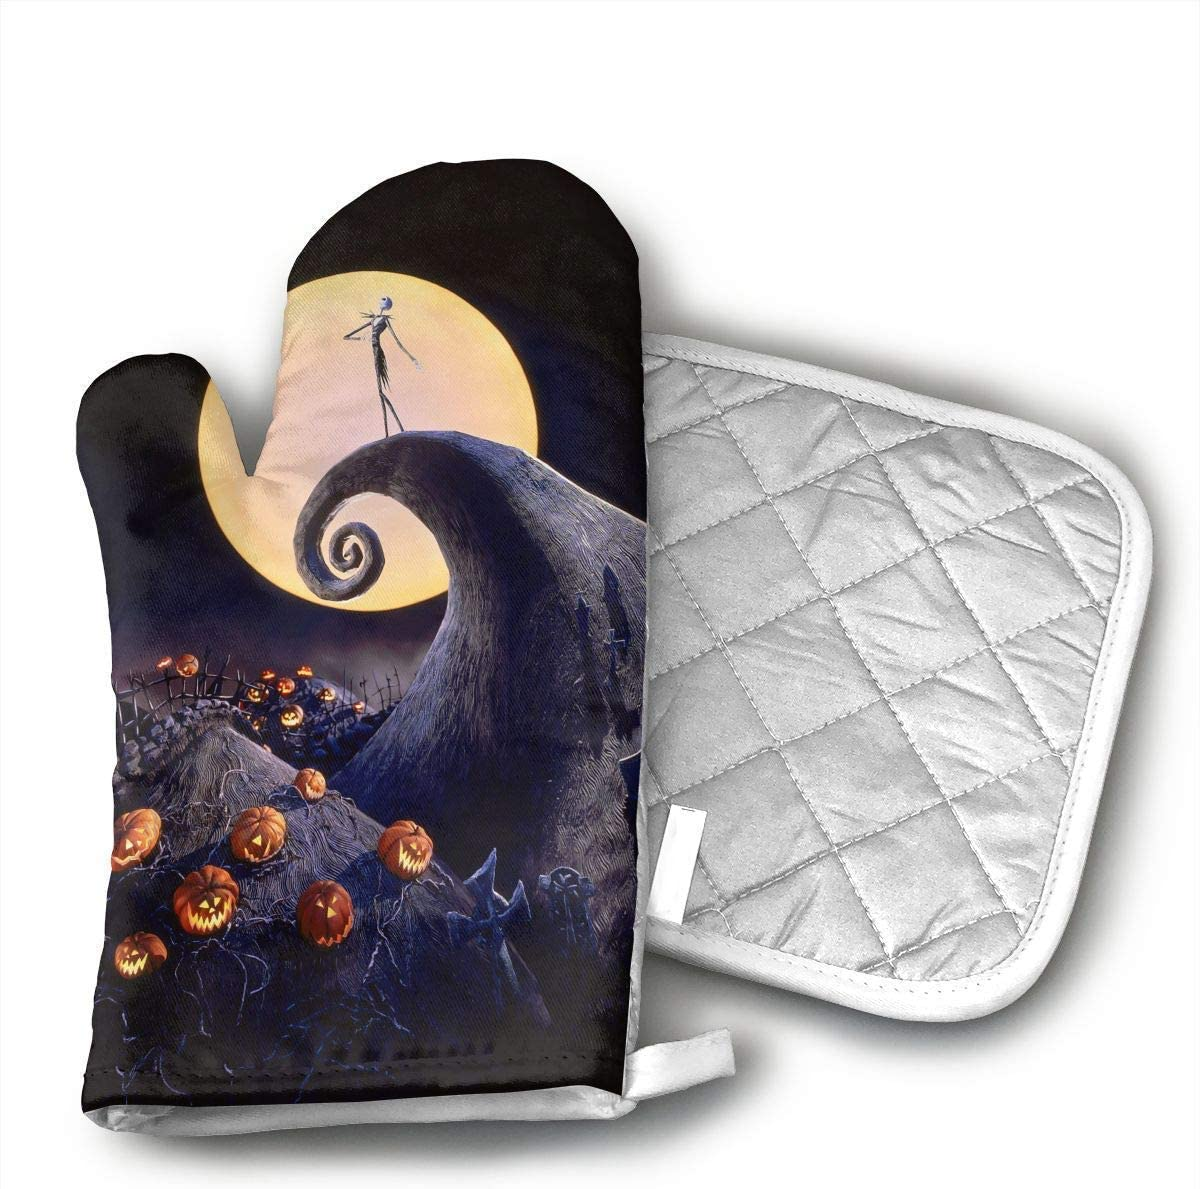 NoveltyGloves The Nightmare Before Christmas Oven Mitts,Professional Heat Resistant Microwave BBQ Oven Insulation Thickening Cotton Gloves Baking Pot Mitts Soft Inner Lining Kitchen Cooking